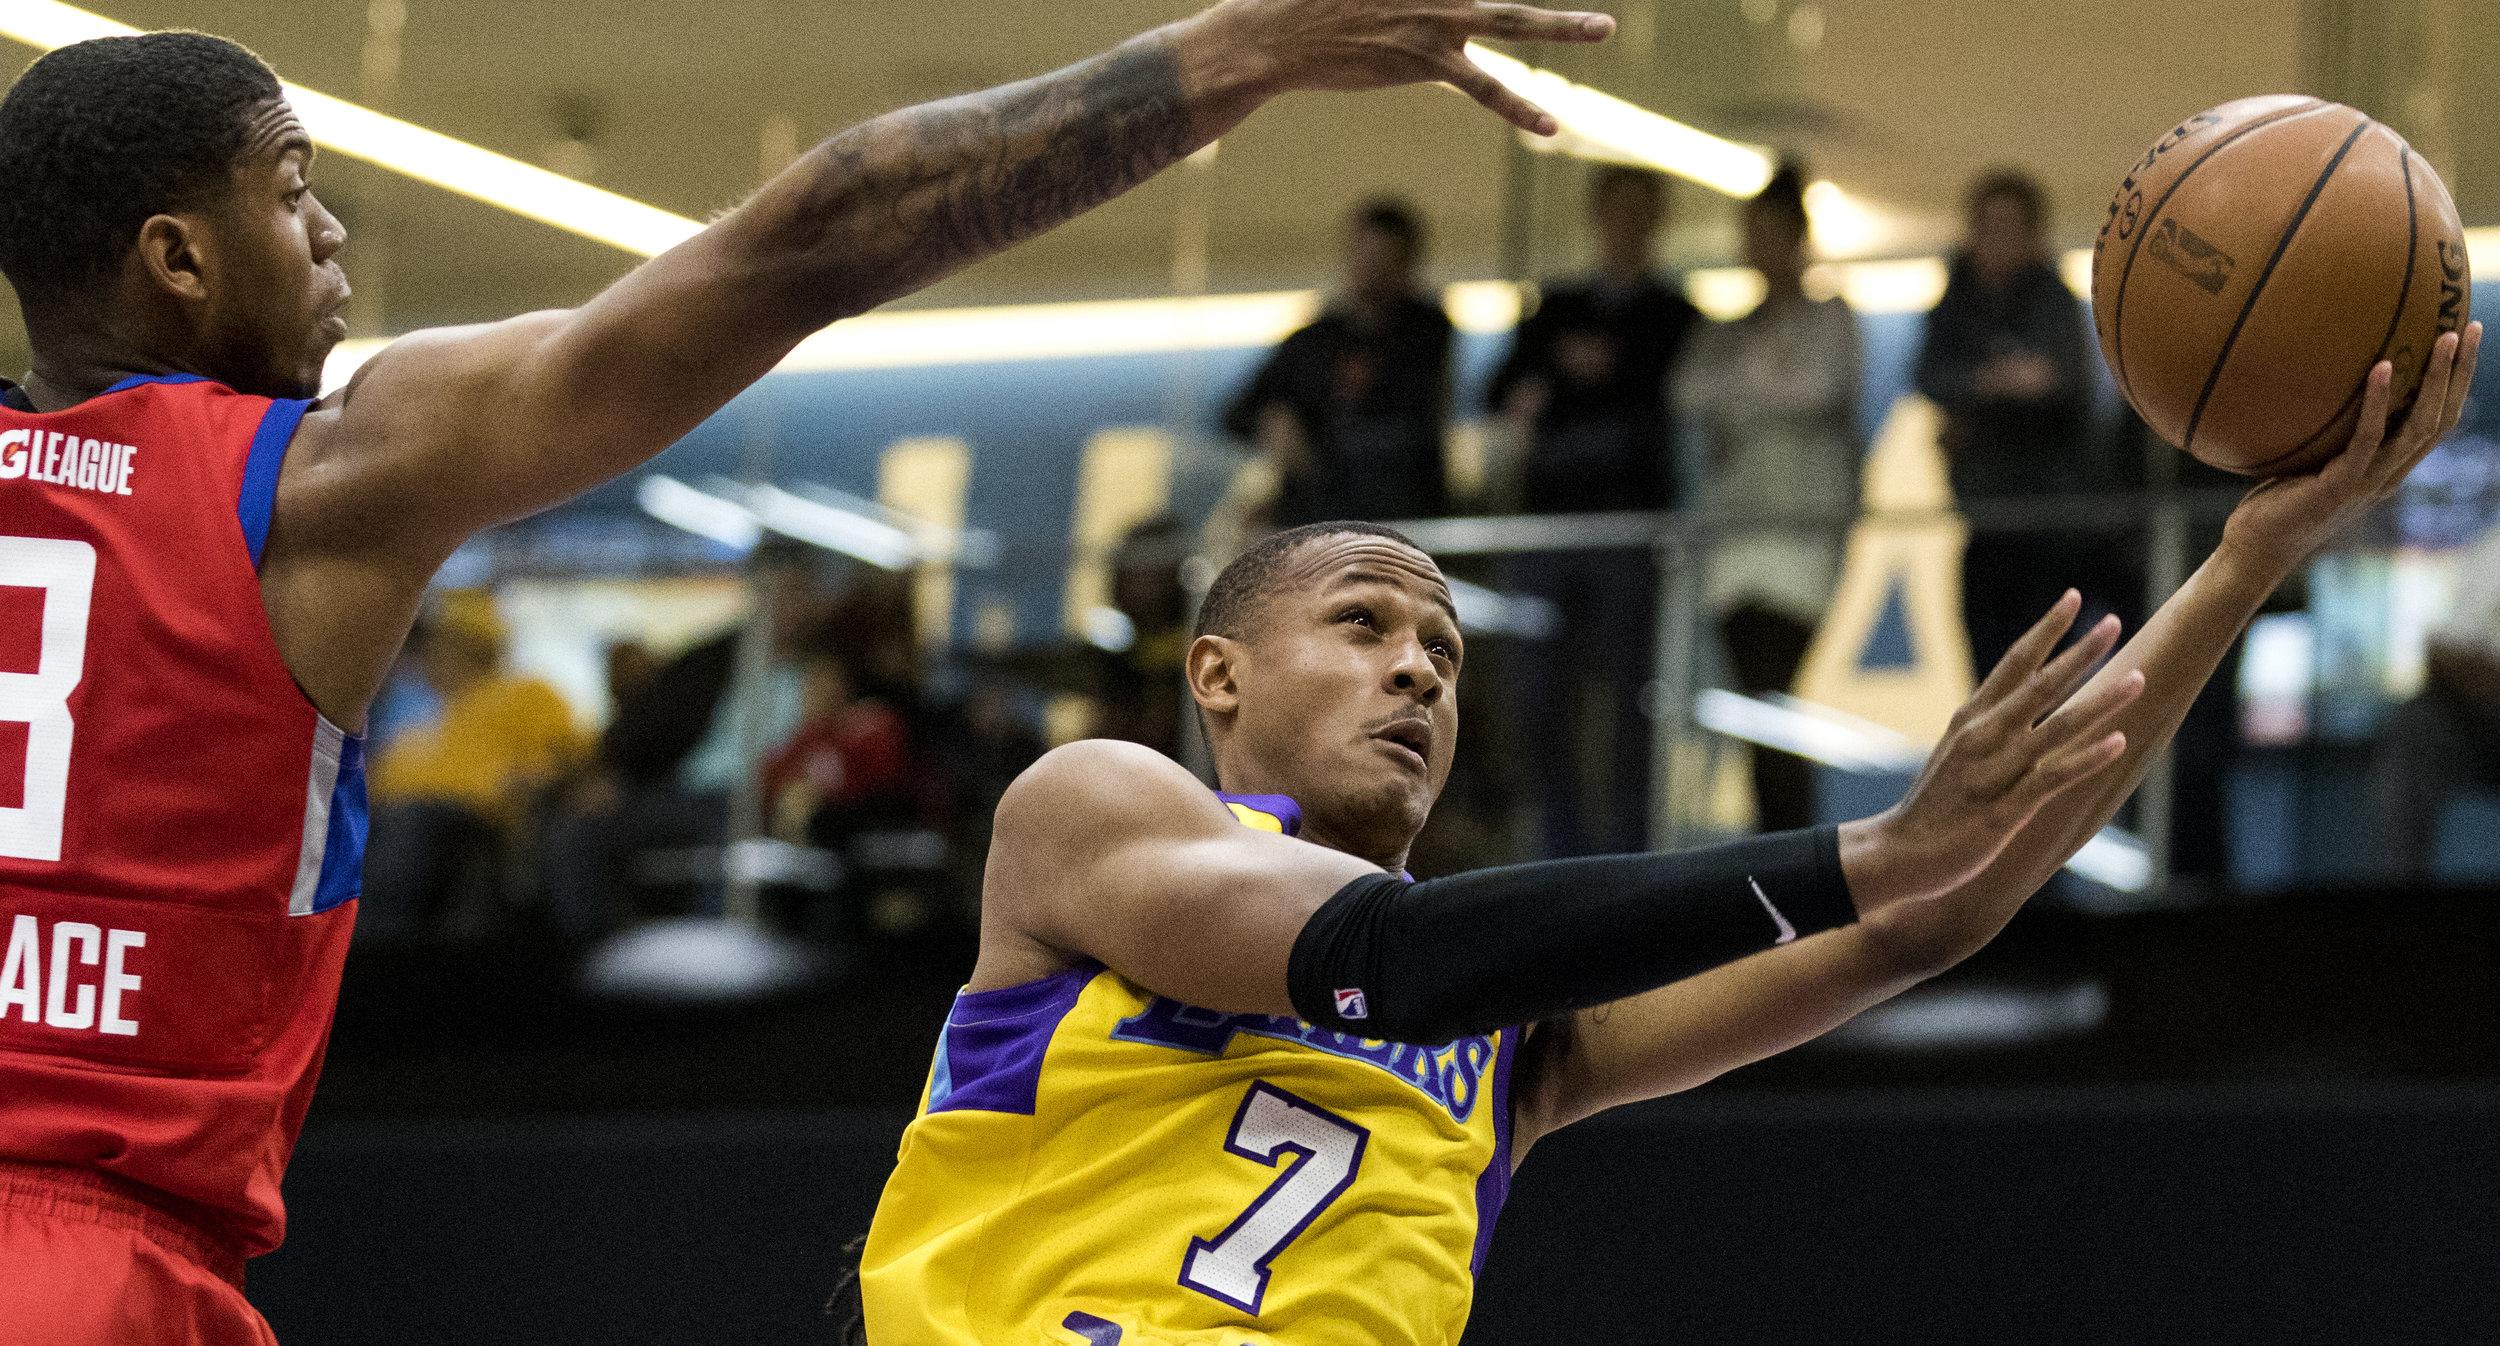 South Bay Lakers guard Demarcus Holland (7, right) goes for a lay up while Agua Caliente Clippers guard Tyrone Wallace (3, left) attempts to block the shot during their Gatorade League game on March 16, 2017 at the UCLA Health Stadium in El Segundo,California. The Lakers won 108-104. (Zane Meyer-Thornton/Corsair Photo)